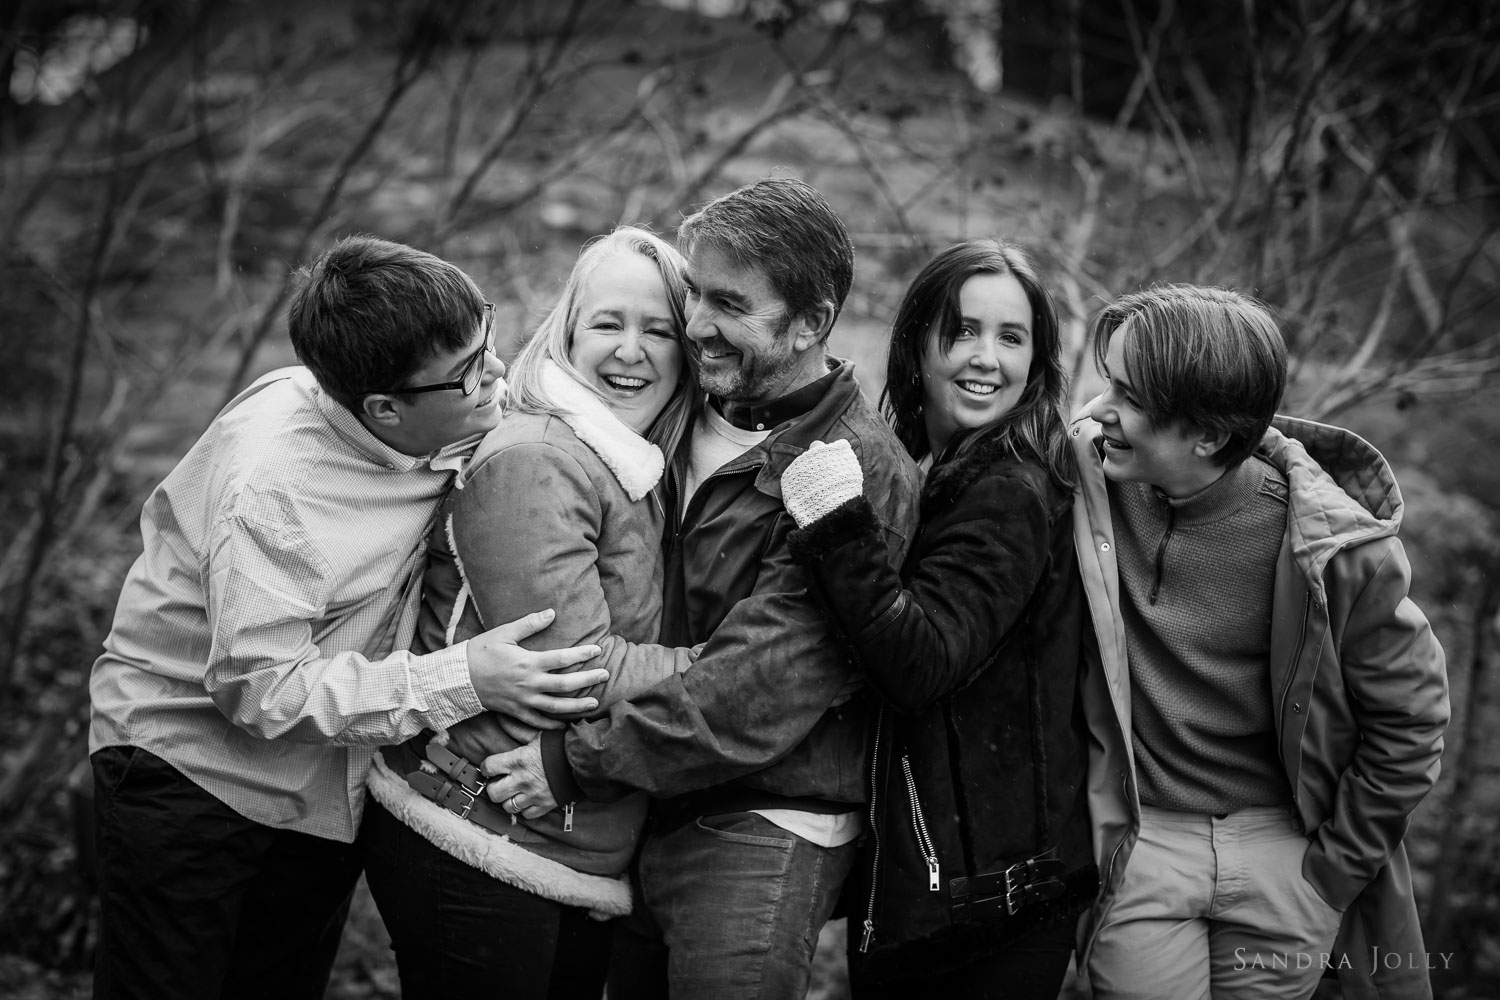 Fun-family-portrait-in-Danderyd-by-familjefotograf-Sandra-Jolly.jpg